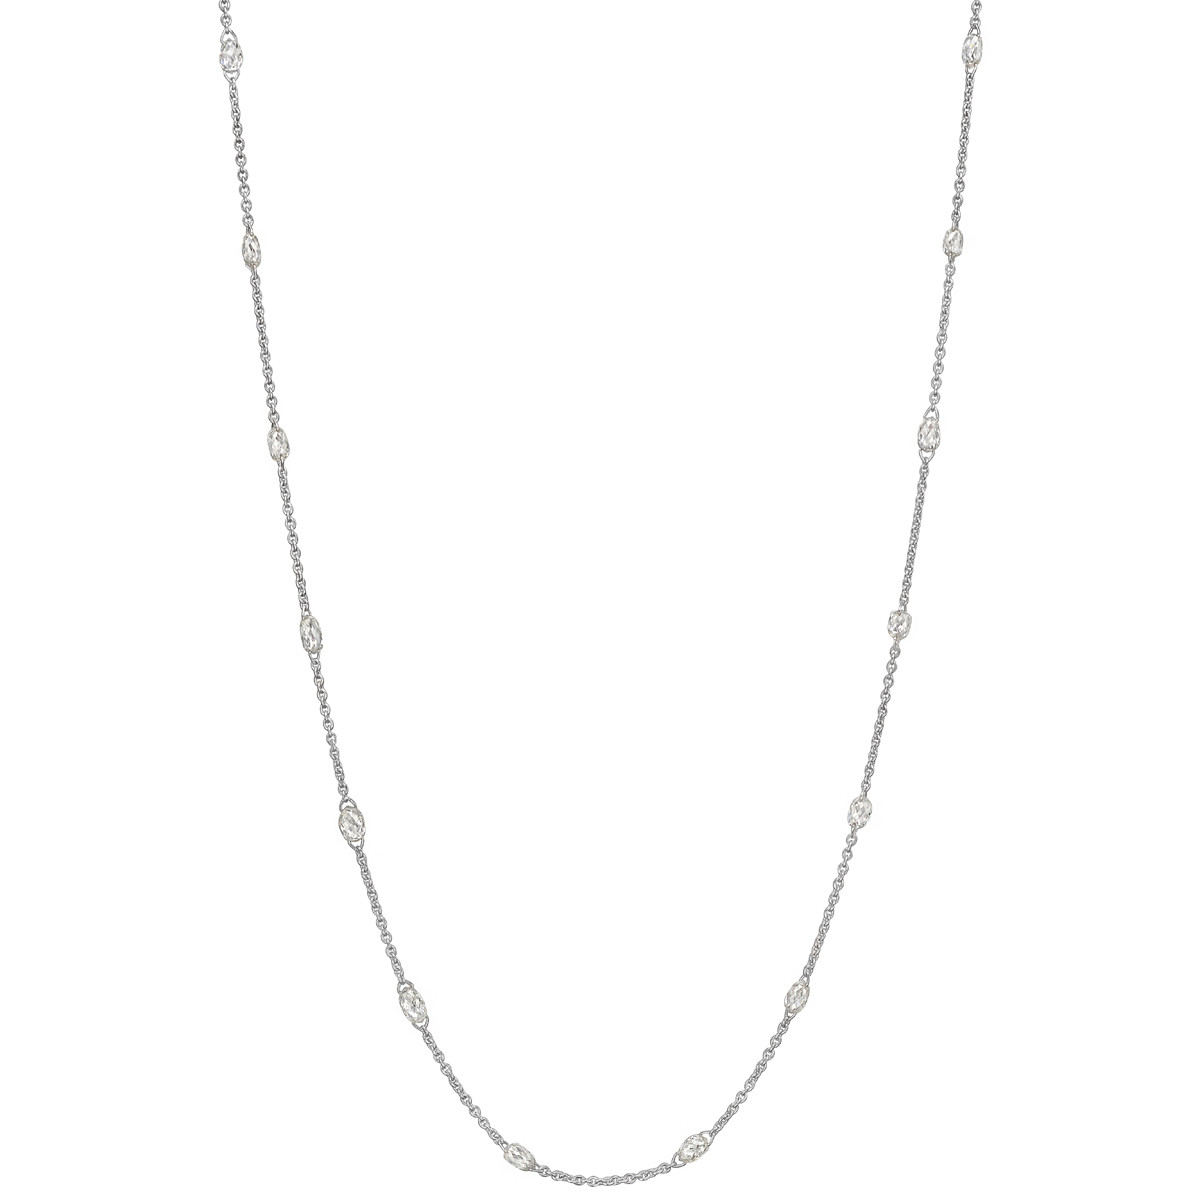 Briolette-Cut Diamond Chain Necklace (3.58 ct tw)